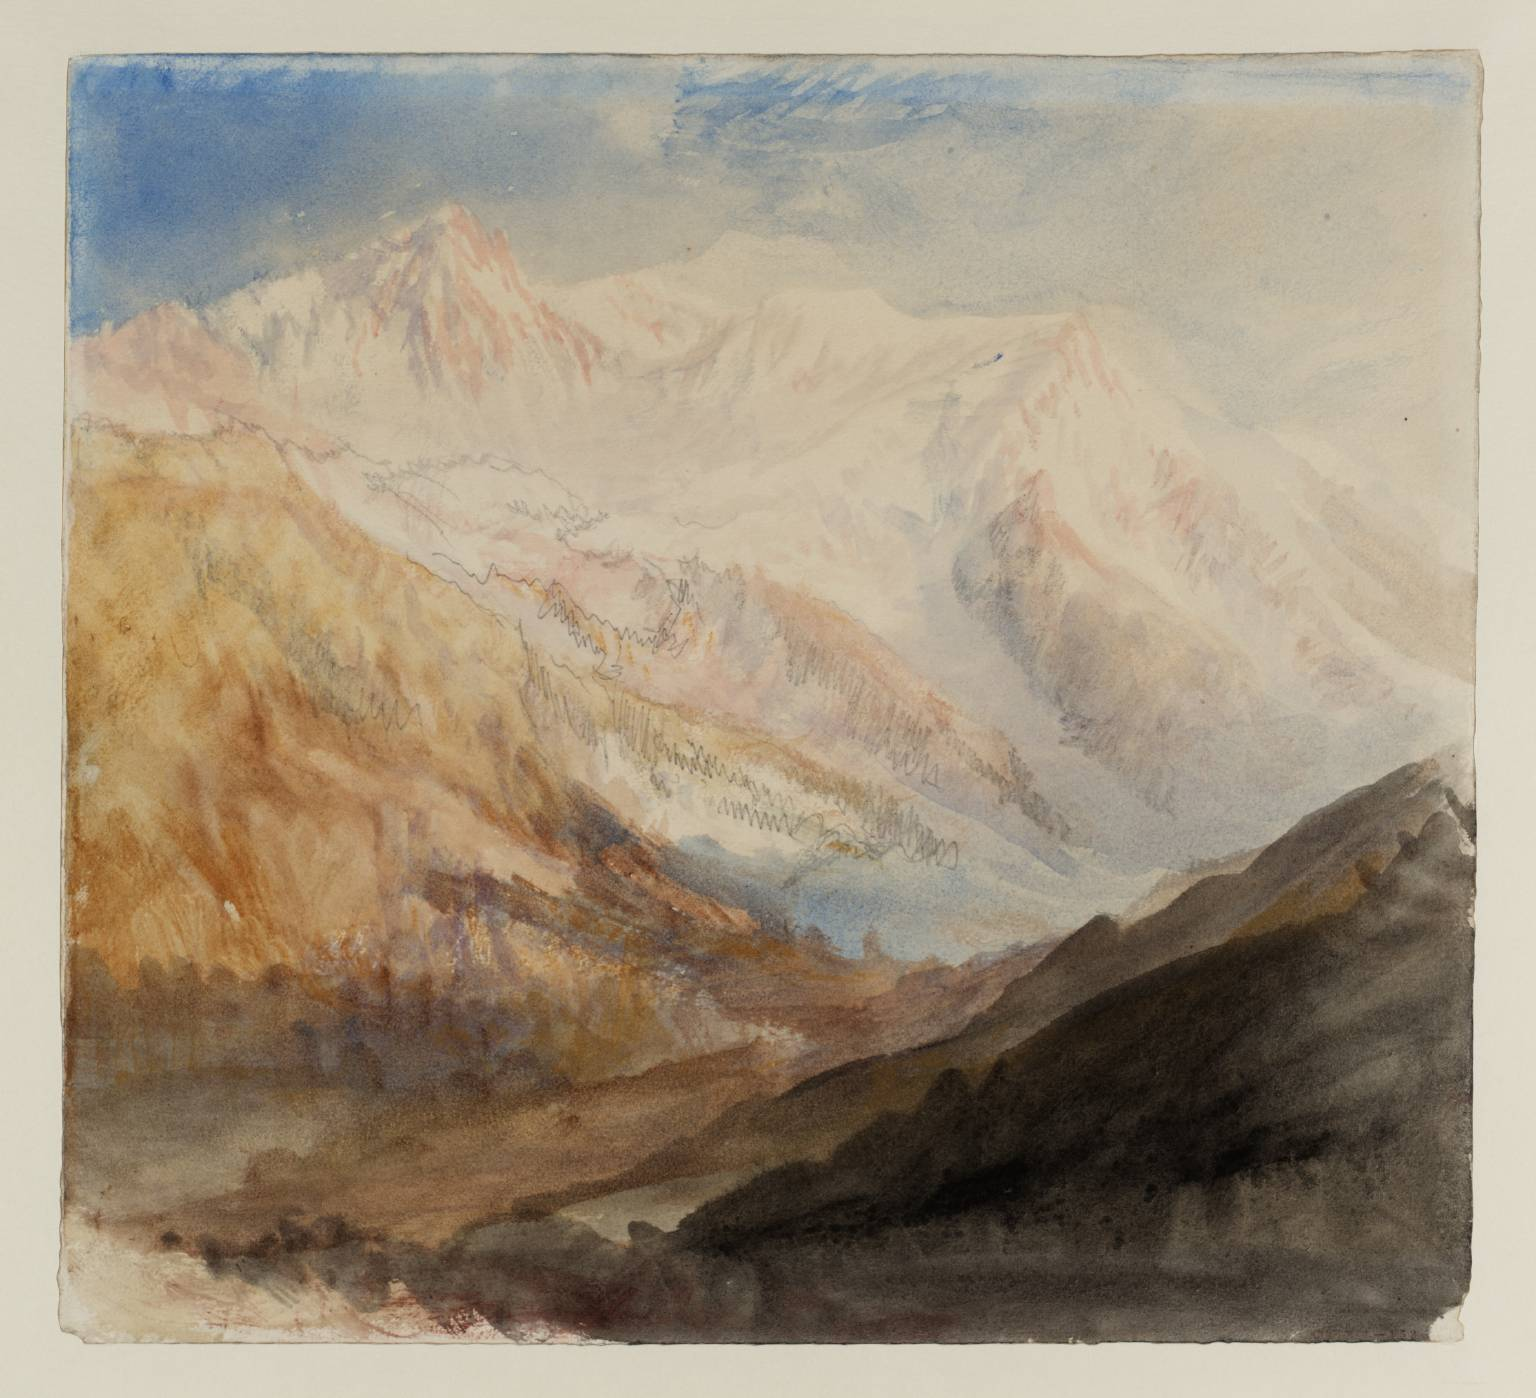 Joseph Mallord William Turner. Mont Blanc and the Glacier des Bossons from above Chamonix, dawn 1836.